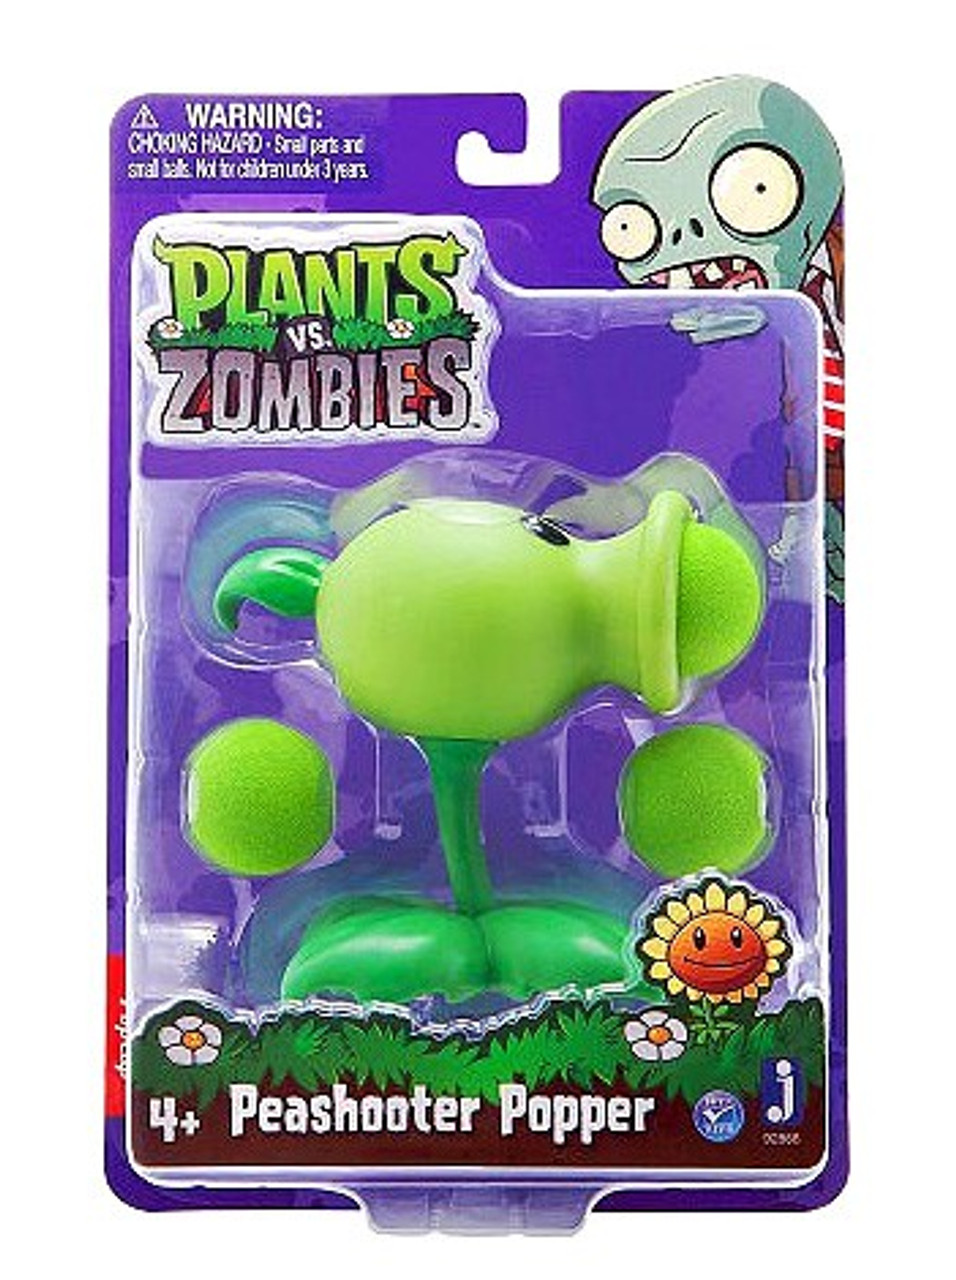 2 Zomb New Plants vs Zombies Toys Package Set with Lights and Sounds 3 Plants